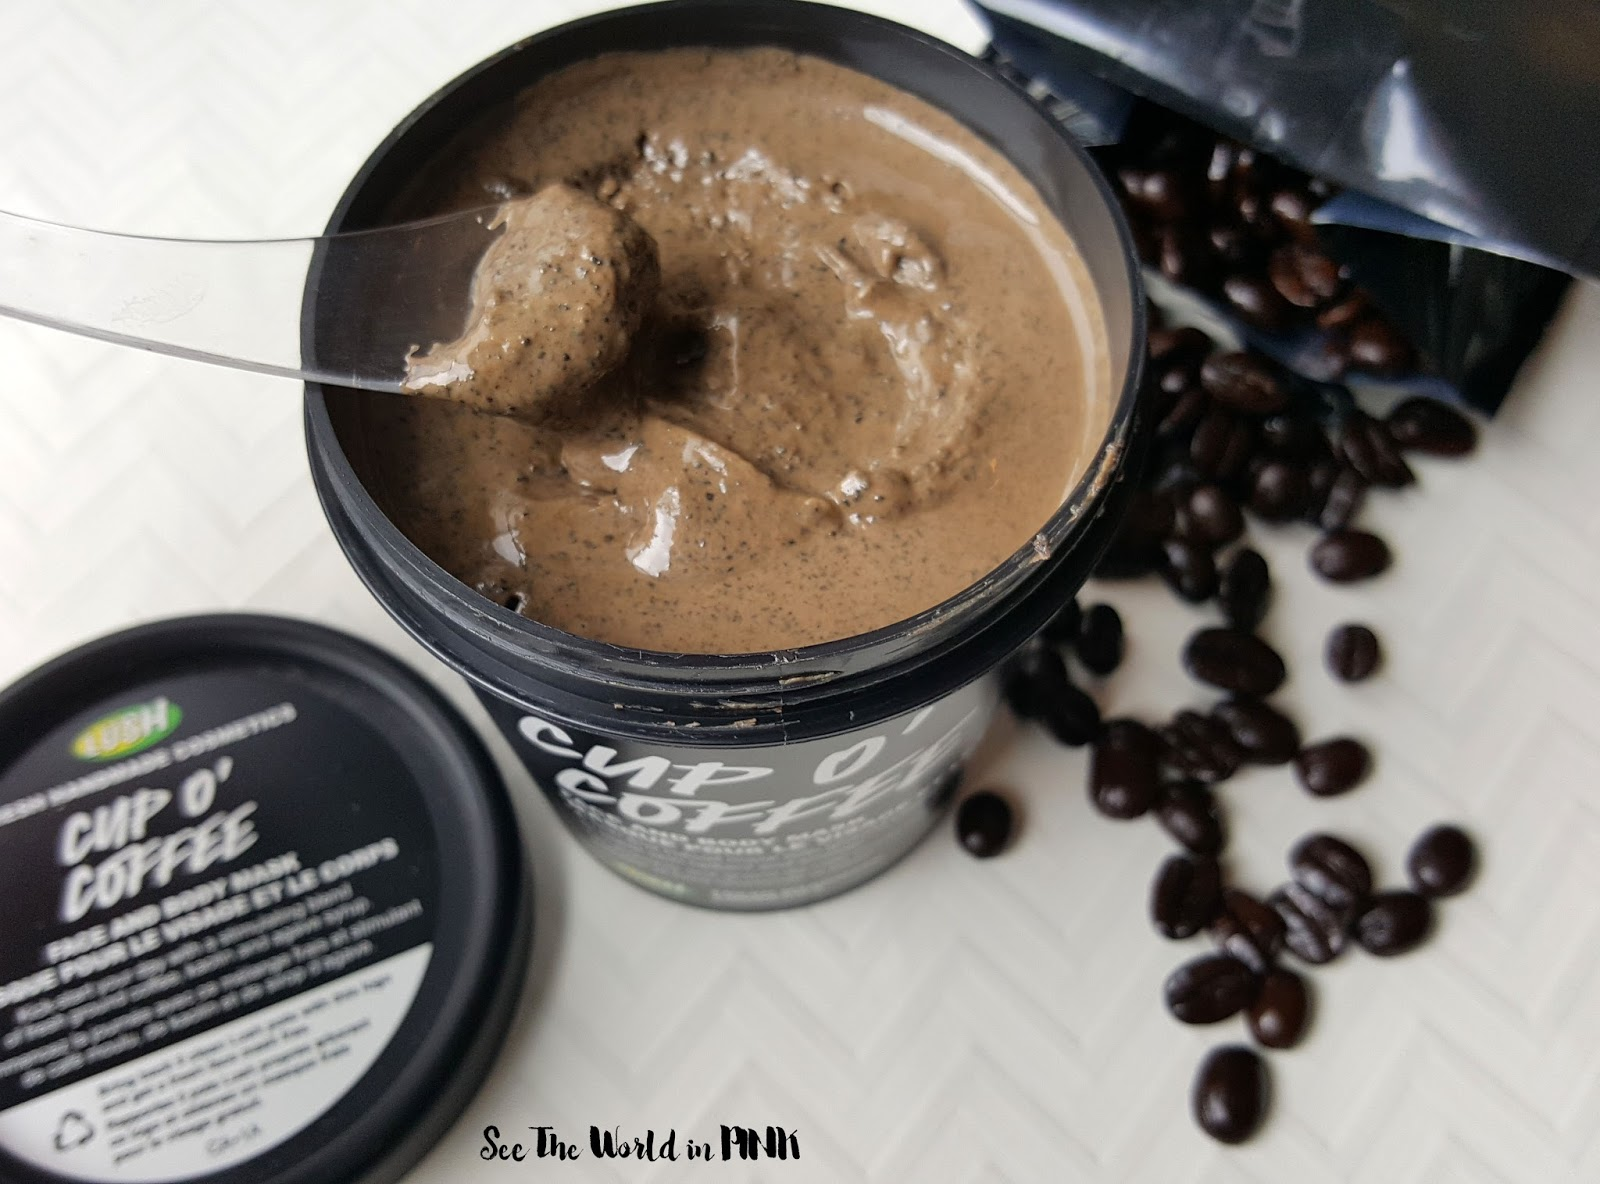 Earth Day Skincare Saturday - Lush Cup O' Coffee Mask Review and A Look At Lush's Environmental Practices!